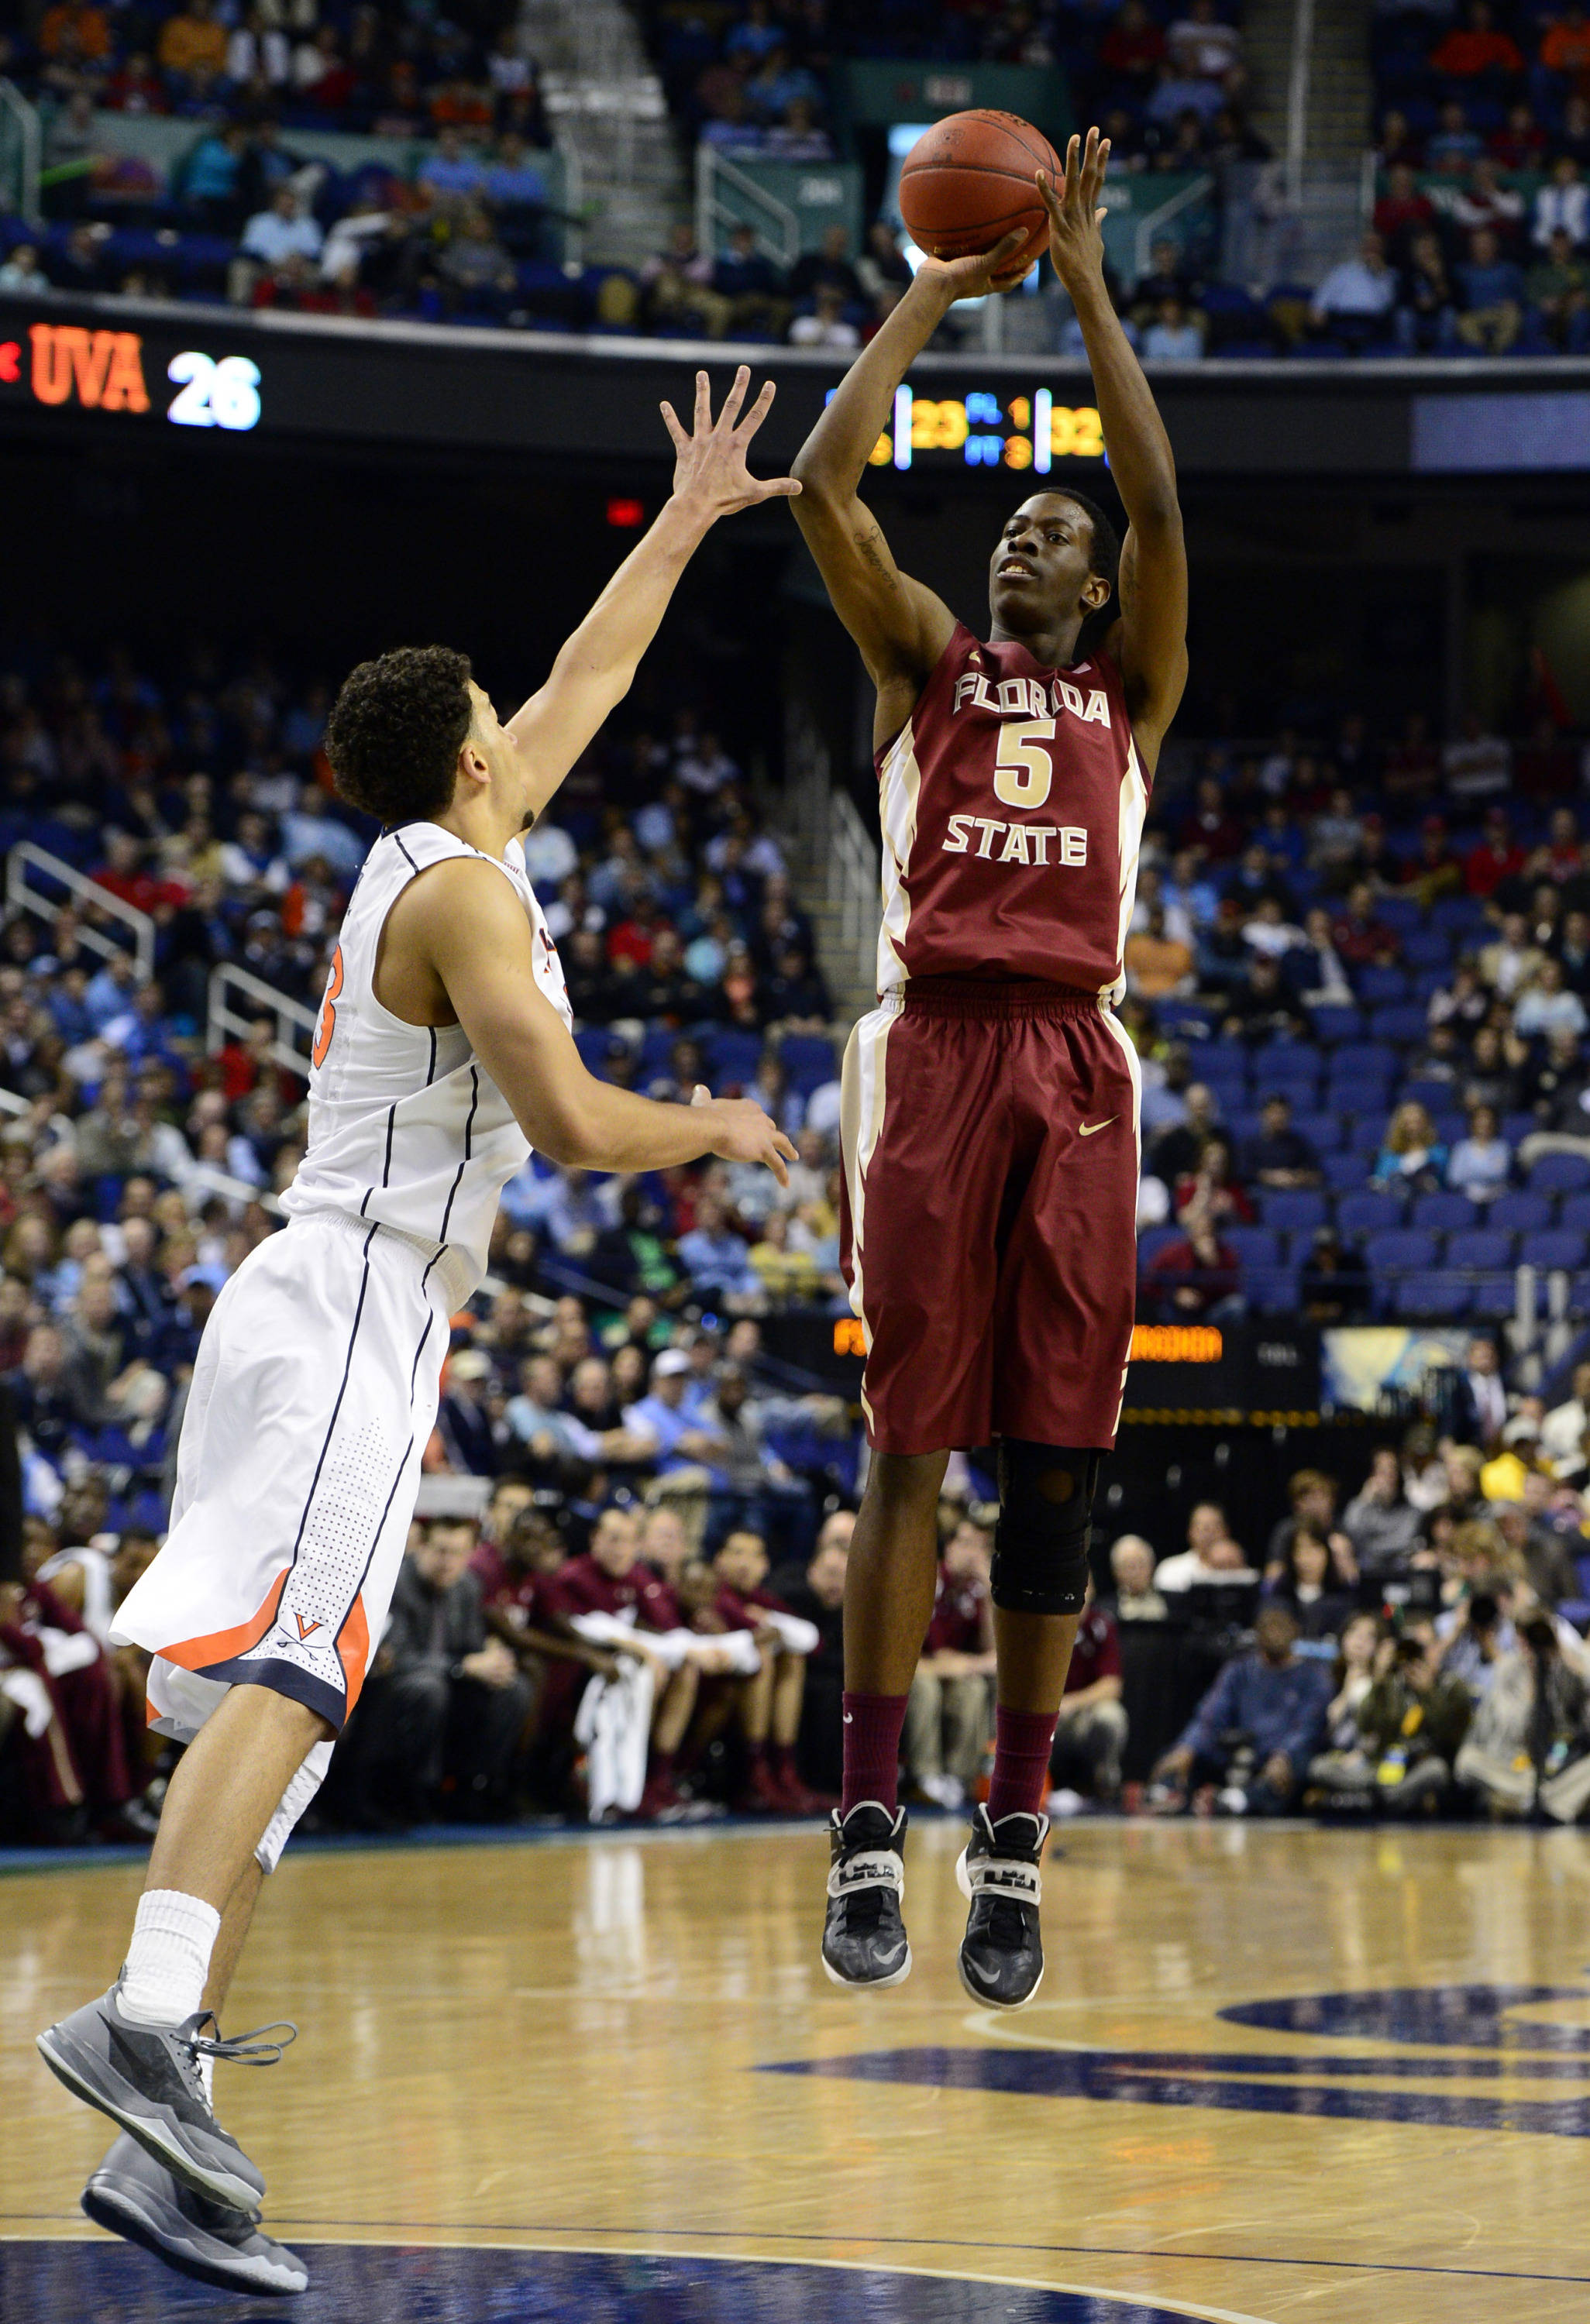 Mar 14, 2014; Greensboro, NC, USA; Florida State Seminoles forward Jarquez Smith (5) takes a jump shot over Virginia Cavaliers forward Anthony Gill (13) in the quarterfinals of the ACC college basketball tournament at Greensboro Coliseum. Mandatory Credit: John David Mercer-USA TODAY Sports